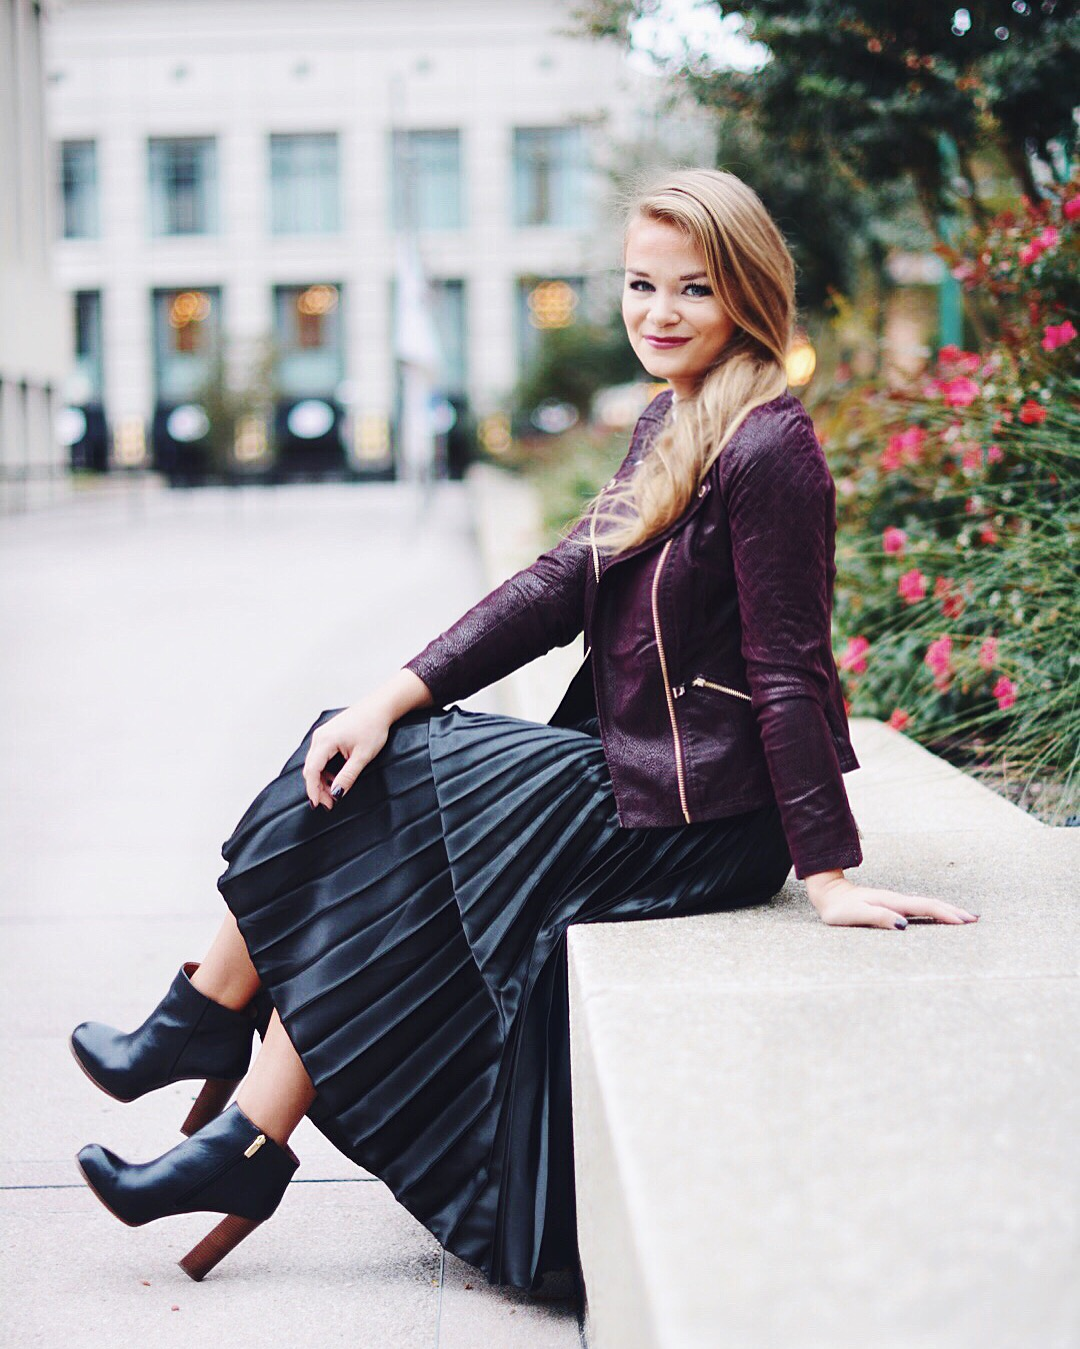 whatCourtwore : Satin Pleated Midi Skirt